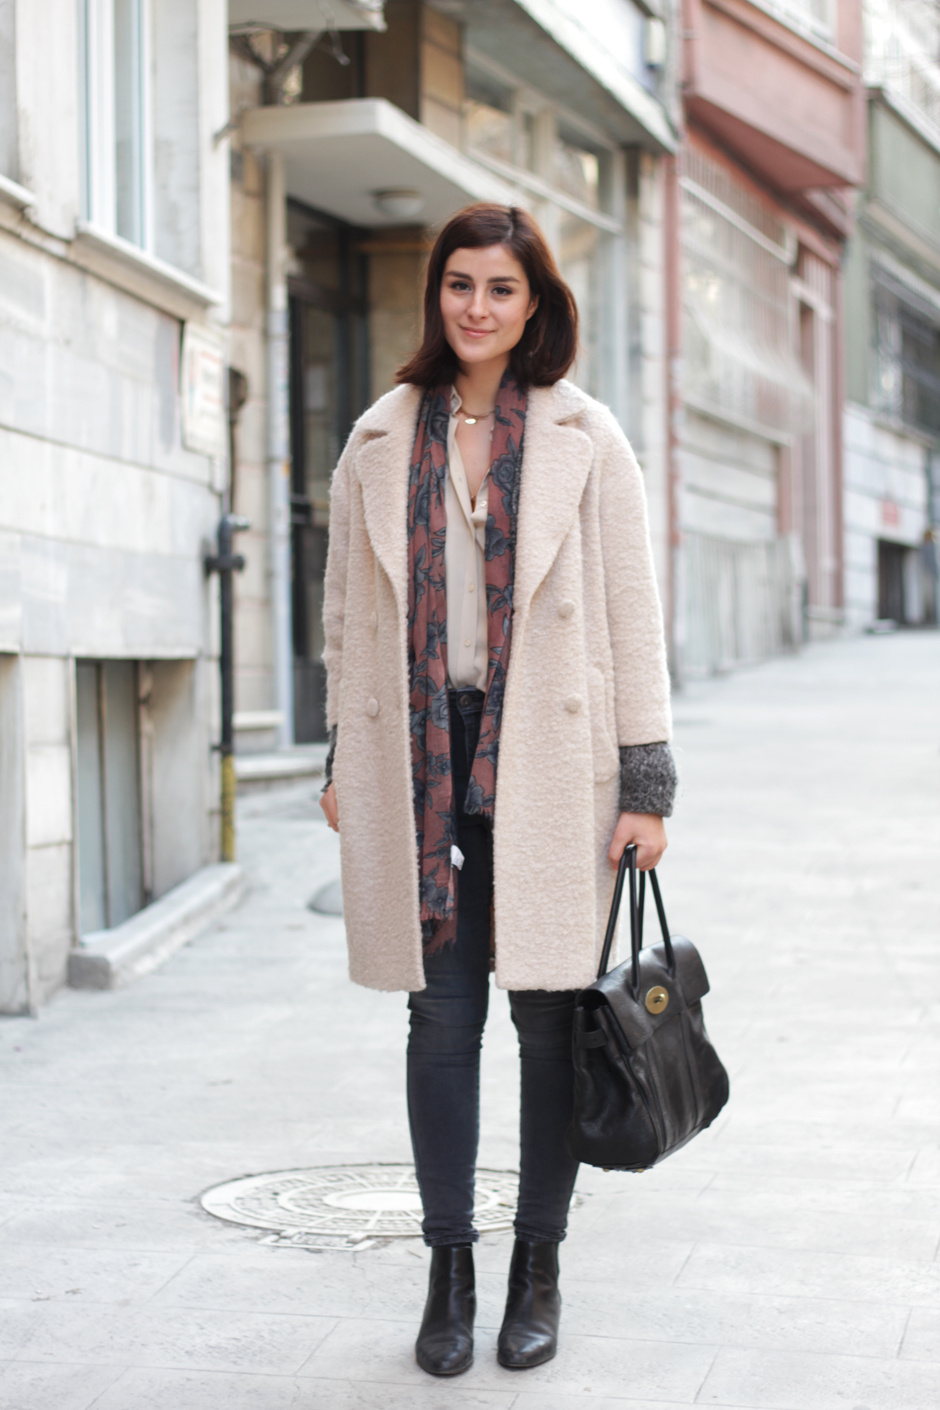 Powder Pink Coat – Nil Erturk